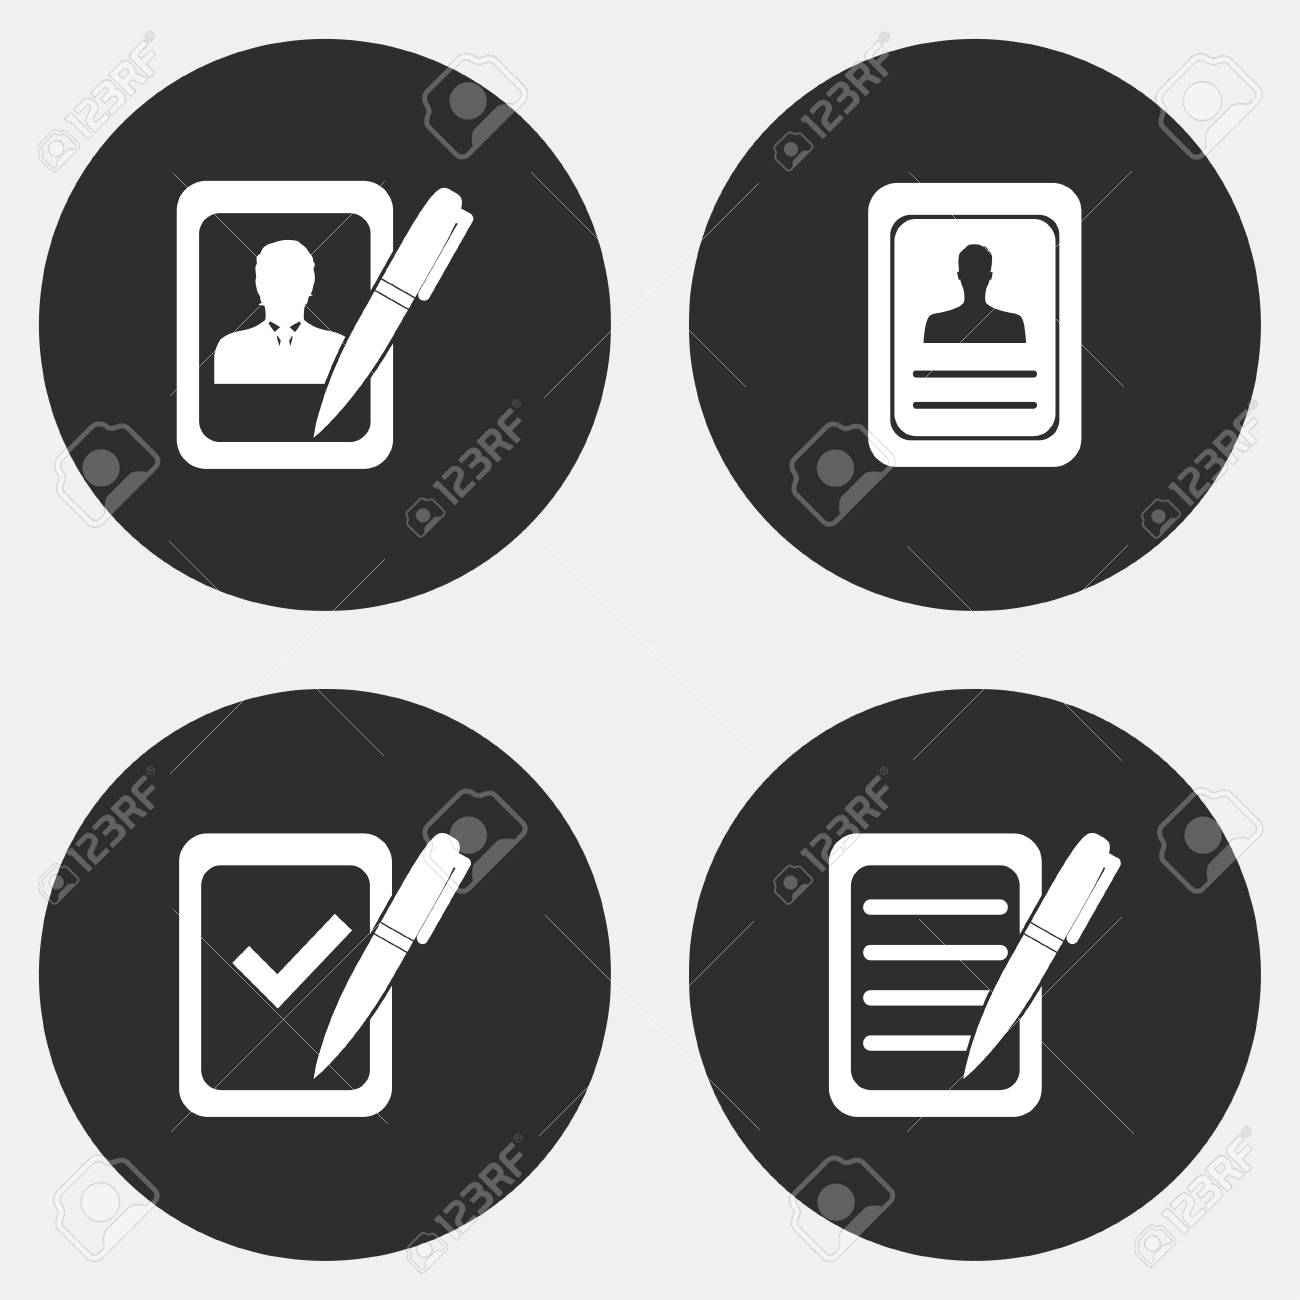 Application Form Vector Icon Set. Illustration Isolated For Graphic on pdf application form, accessible forms, web home page, user interface design for programmers, marketing form, web form order form pdf, data form, business application form, security application form, google application form, design order form, user interface form, retail application form, epass application form, print application form, education application form, travel application form, work application form, online application form, training application form, software application form, advertising form, web mail form, finance application form, creating accessible forms, event application form,